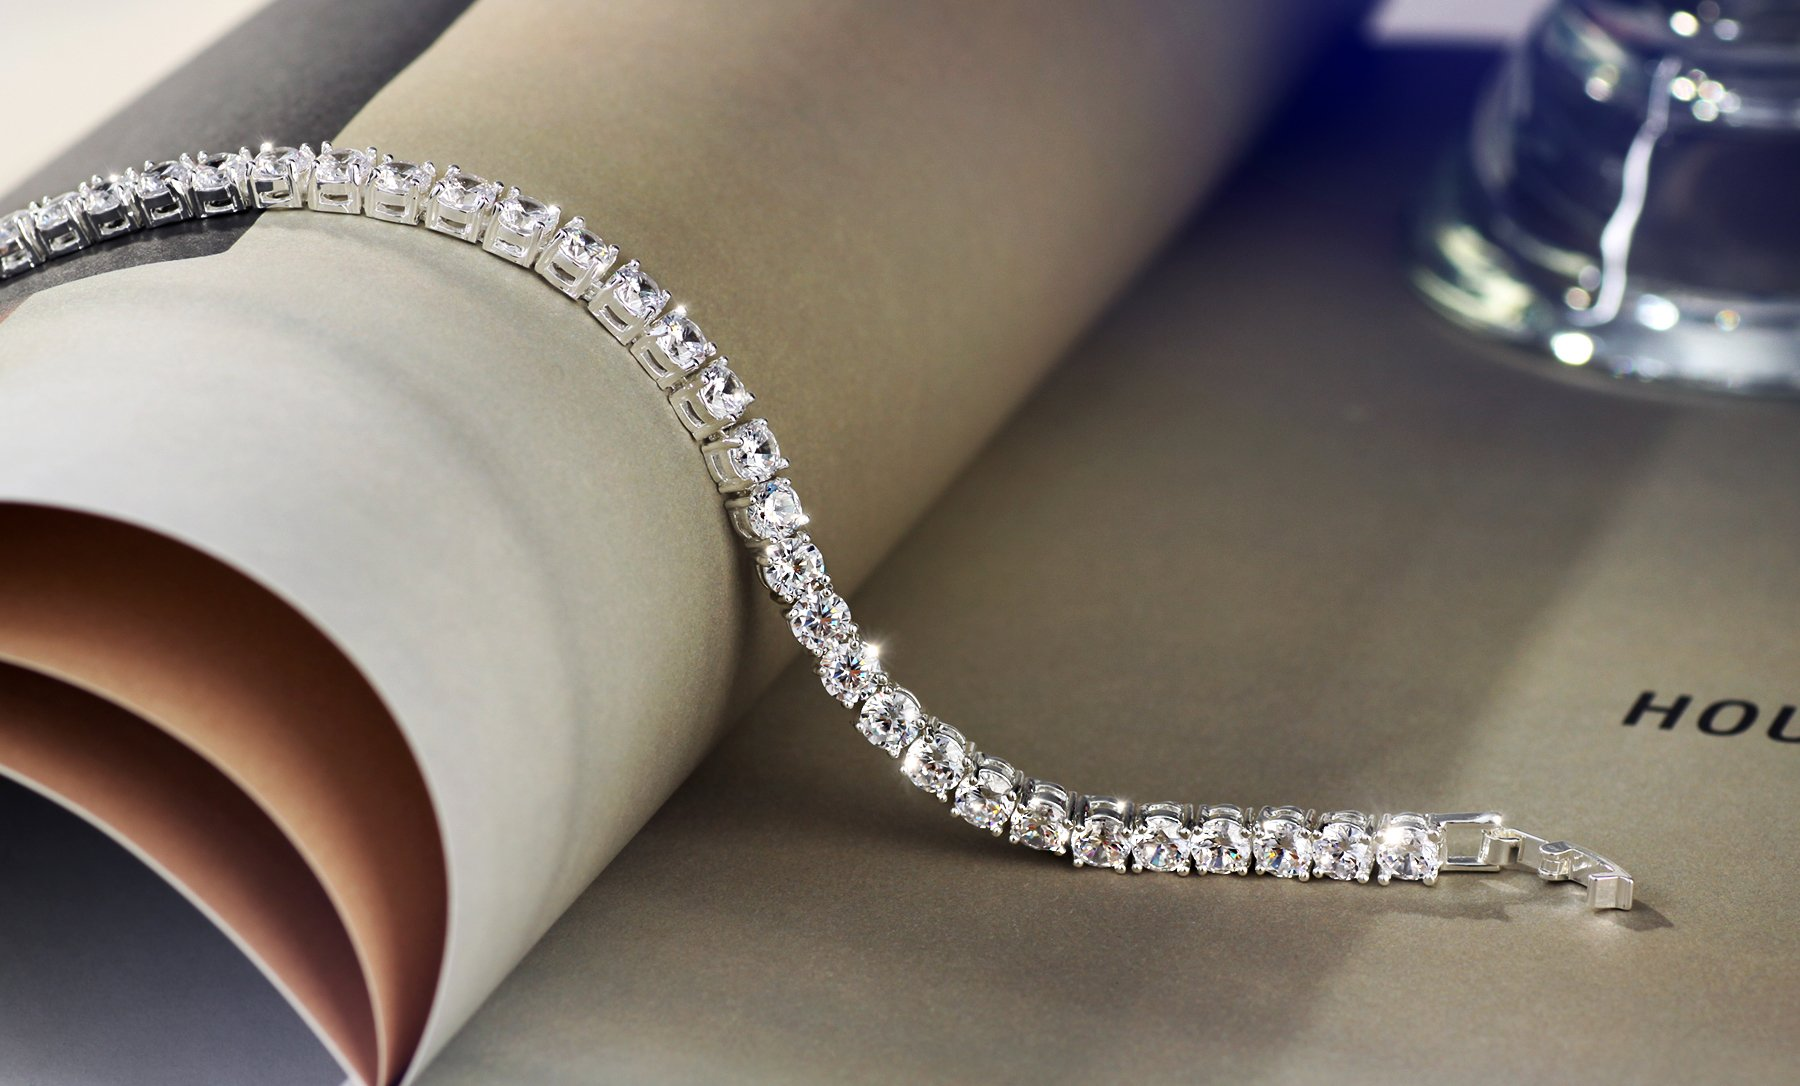 Neoglory Jewelry S925 Silver White Round-Cut Cubic Zirconia Classic Tennis Bracelet 7.7Inch by Neoglory (Image #4)